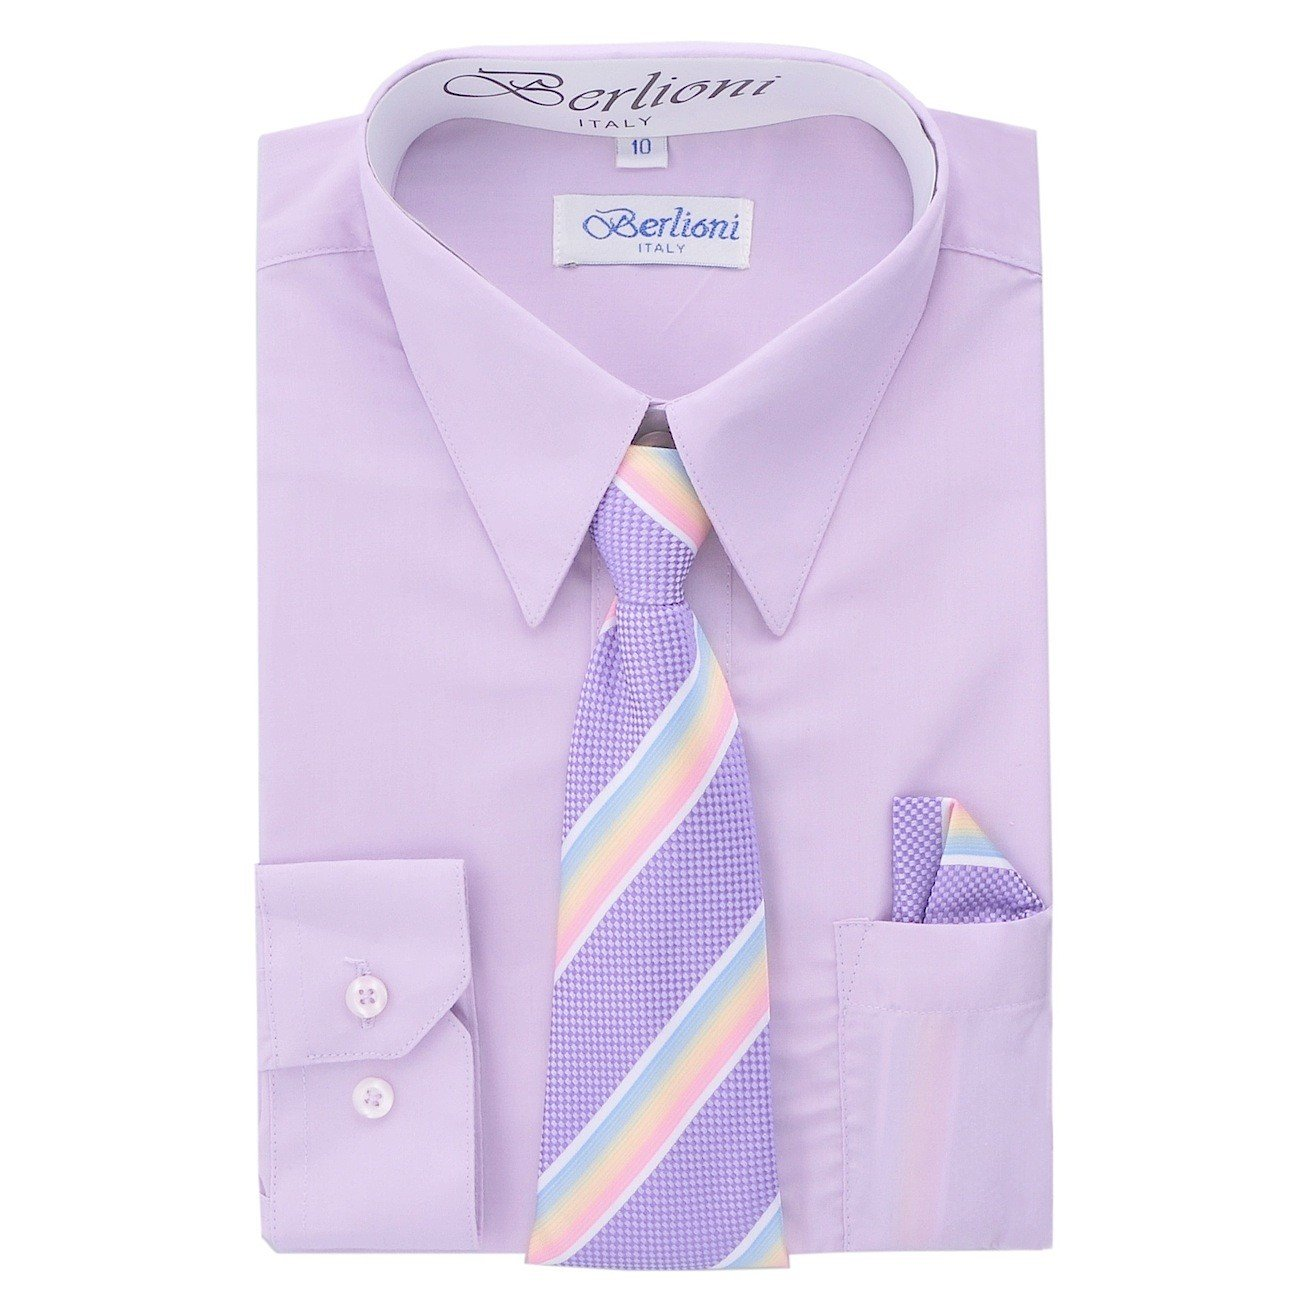 Boys Dress Shirt, Necktie, and Hanky Set - Lilac, Size 12 Boy/'s Dress Shirt N-711